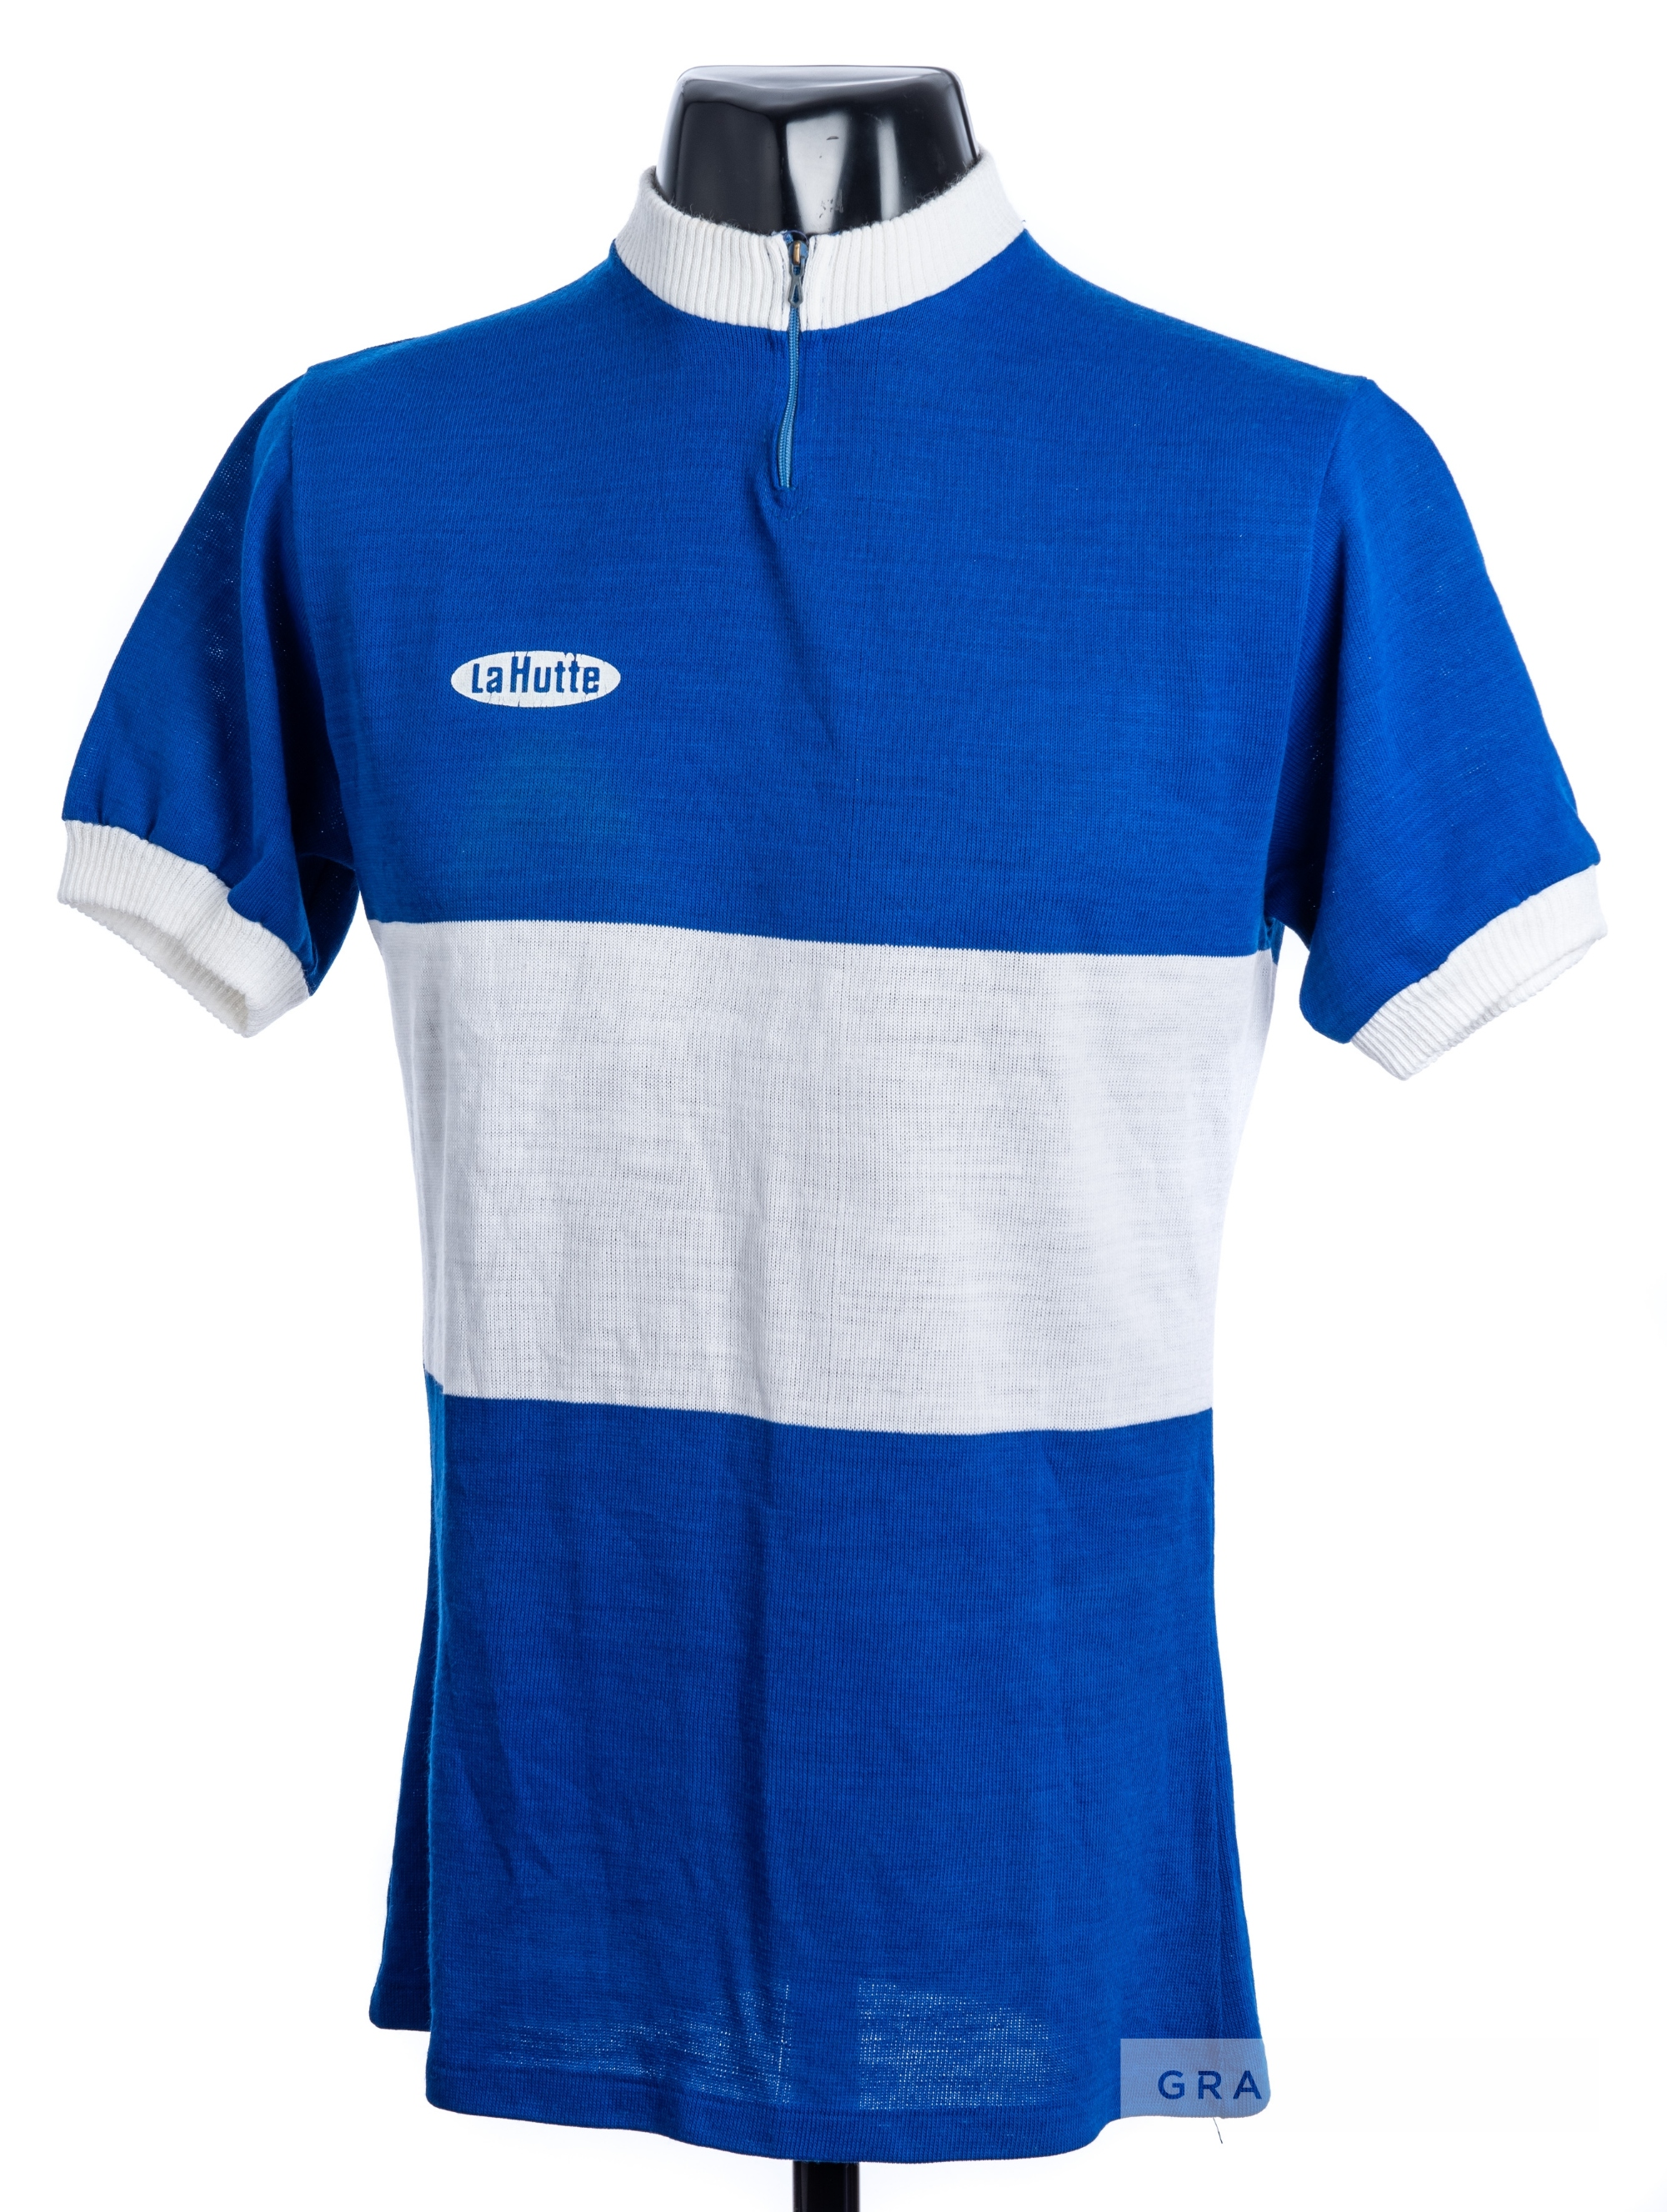 1985 blue and white La Hutte Eroica Cycling team race/tour jersey, scarce, acrylic short-sleeved - Image 3 of 4